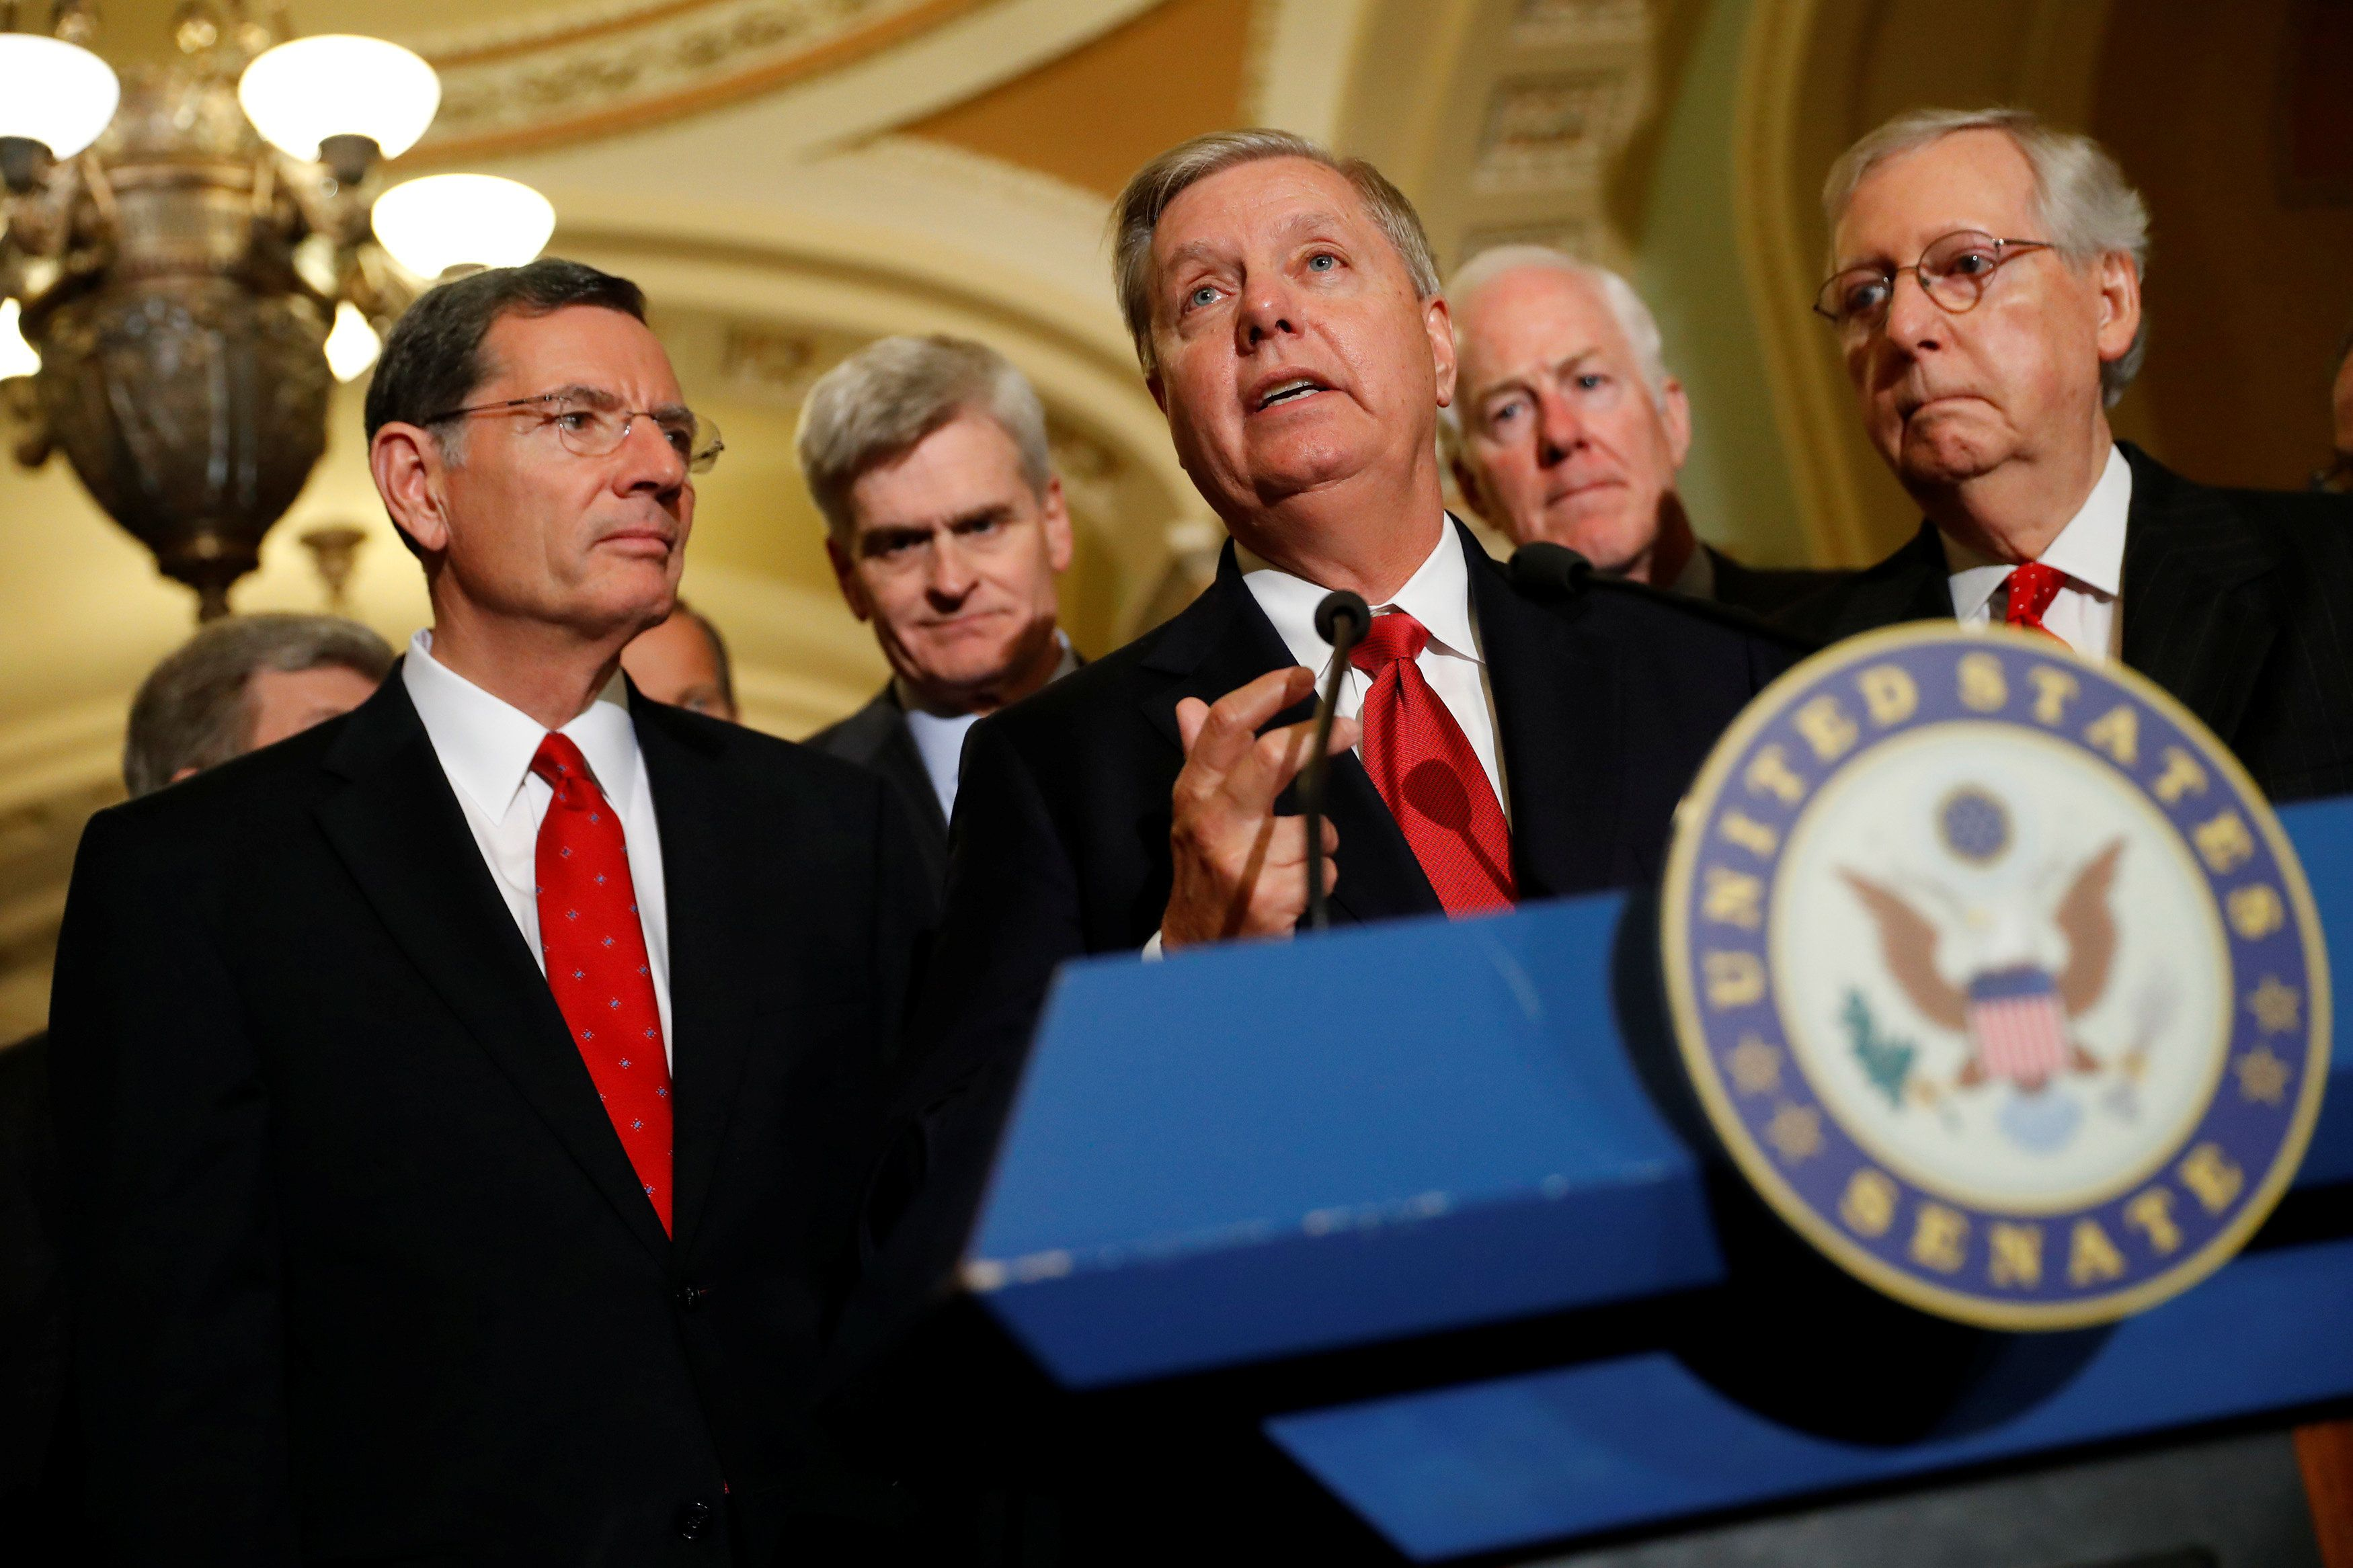 Sen. Lindsey Graham (R-SC), accompanied by (L-R) Sen. John Barrasso, Sen. Bill Cassidy (R-LA), Sen. John Cornyn (R-TX) and Senate Majority Leader Mitch McConnell, speaks with reporters following the party luncheons on Capitol Hill in Washington, U.S., September 26, 2017. REUTERS/Aaron P. Bernstein